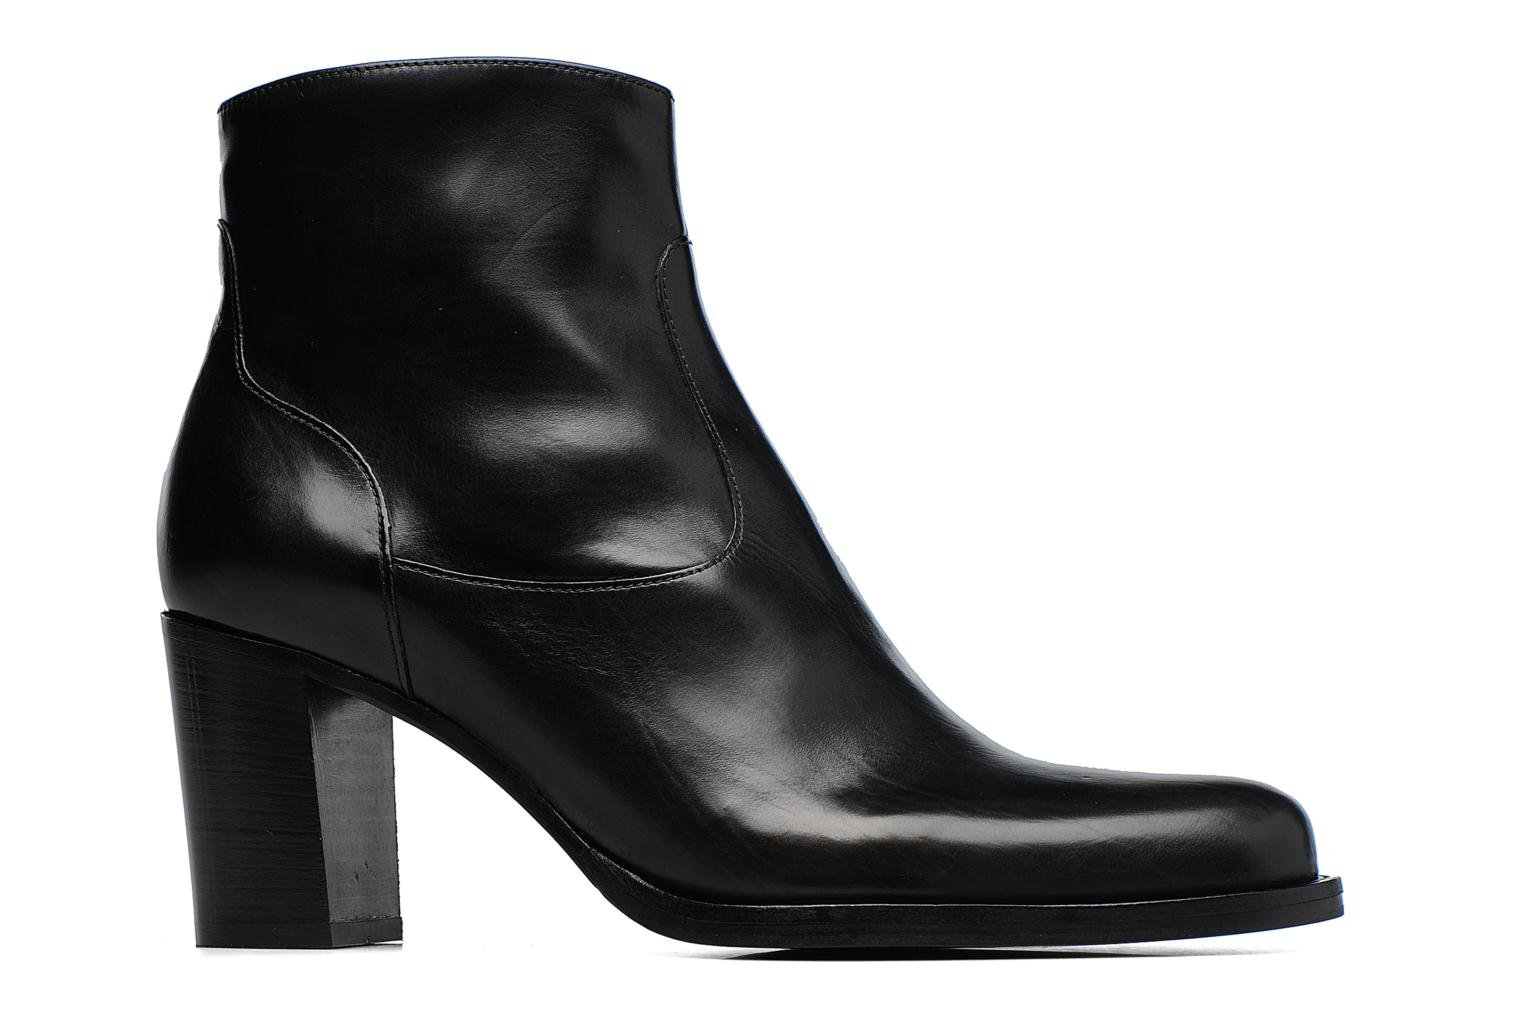 Legend 7 zip boot Berbero Noir